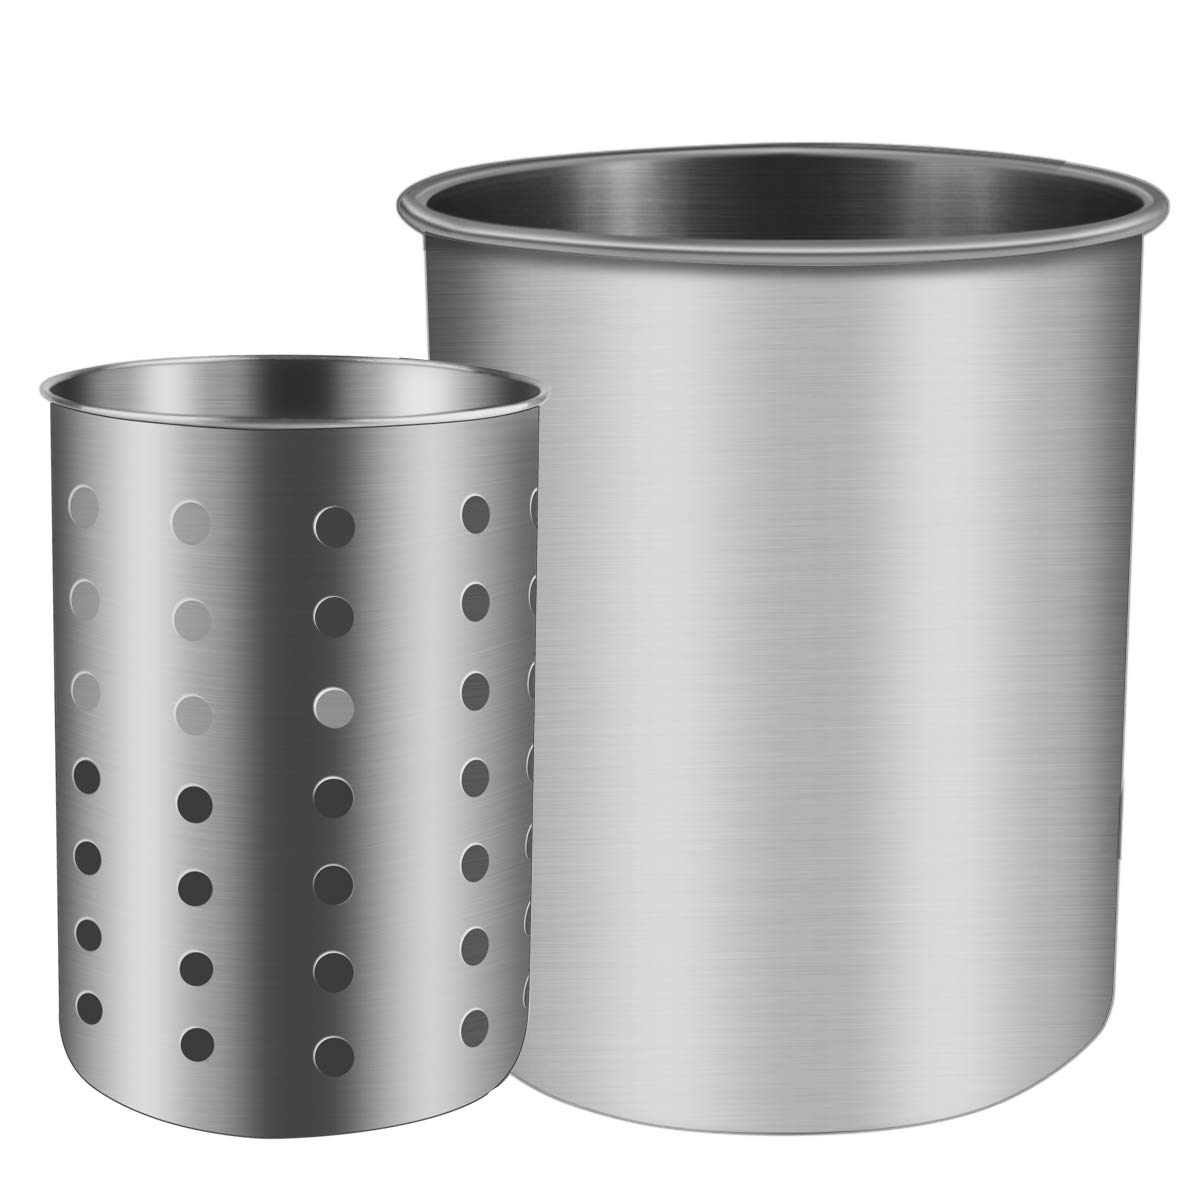 Utensil Holder, Stainless Steel Kitchen Cooking Utensil Holder for Organizing and Storage, Dishwasher Safe - Silver (2 Pack)